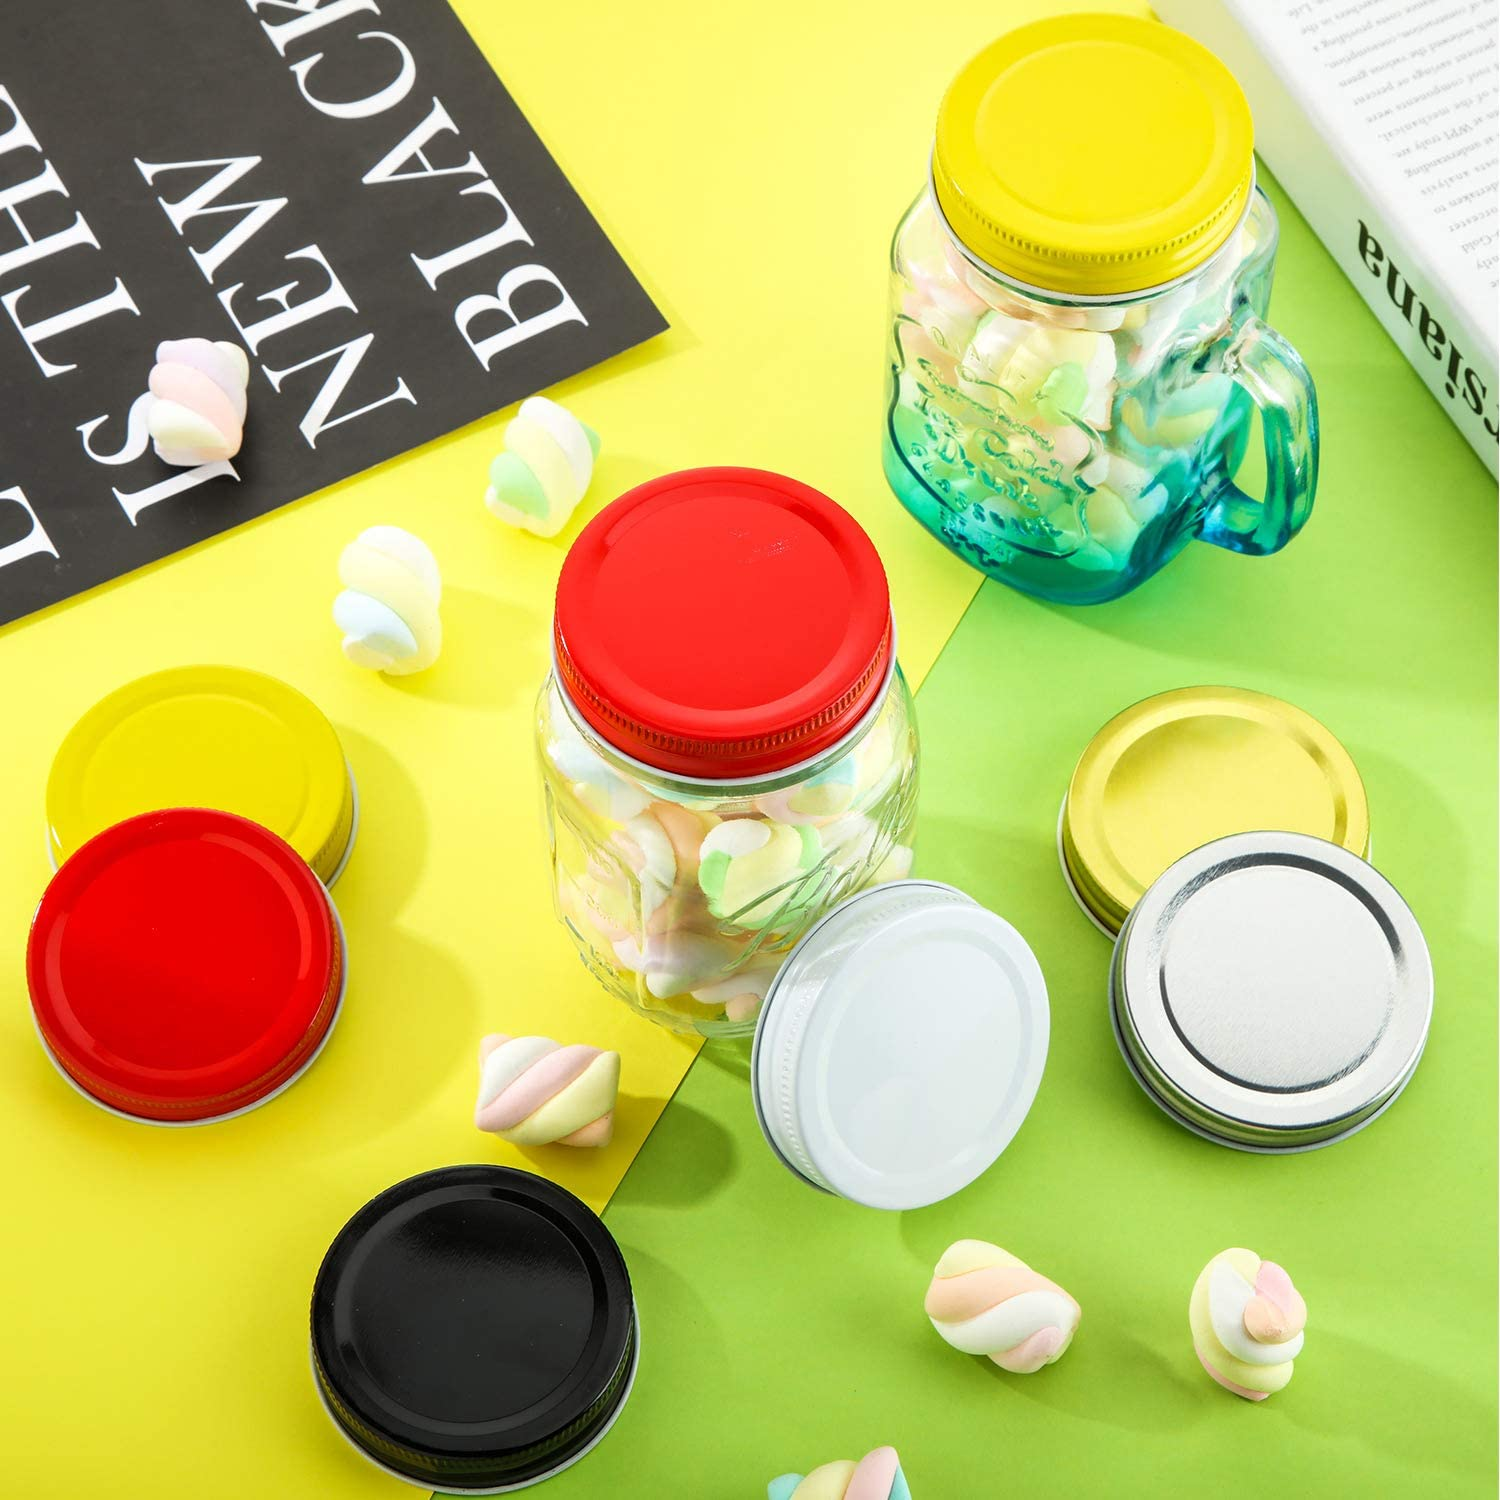 White Silver 12 Pieces Multicolors Regular Mouth Mason Canning Jar Lids Silicone Seals Leak Proof Secure Mason Storage Solid Caps Black Gold Yellow Red